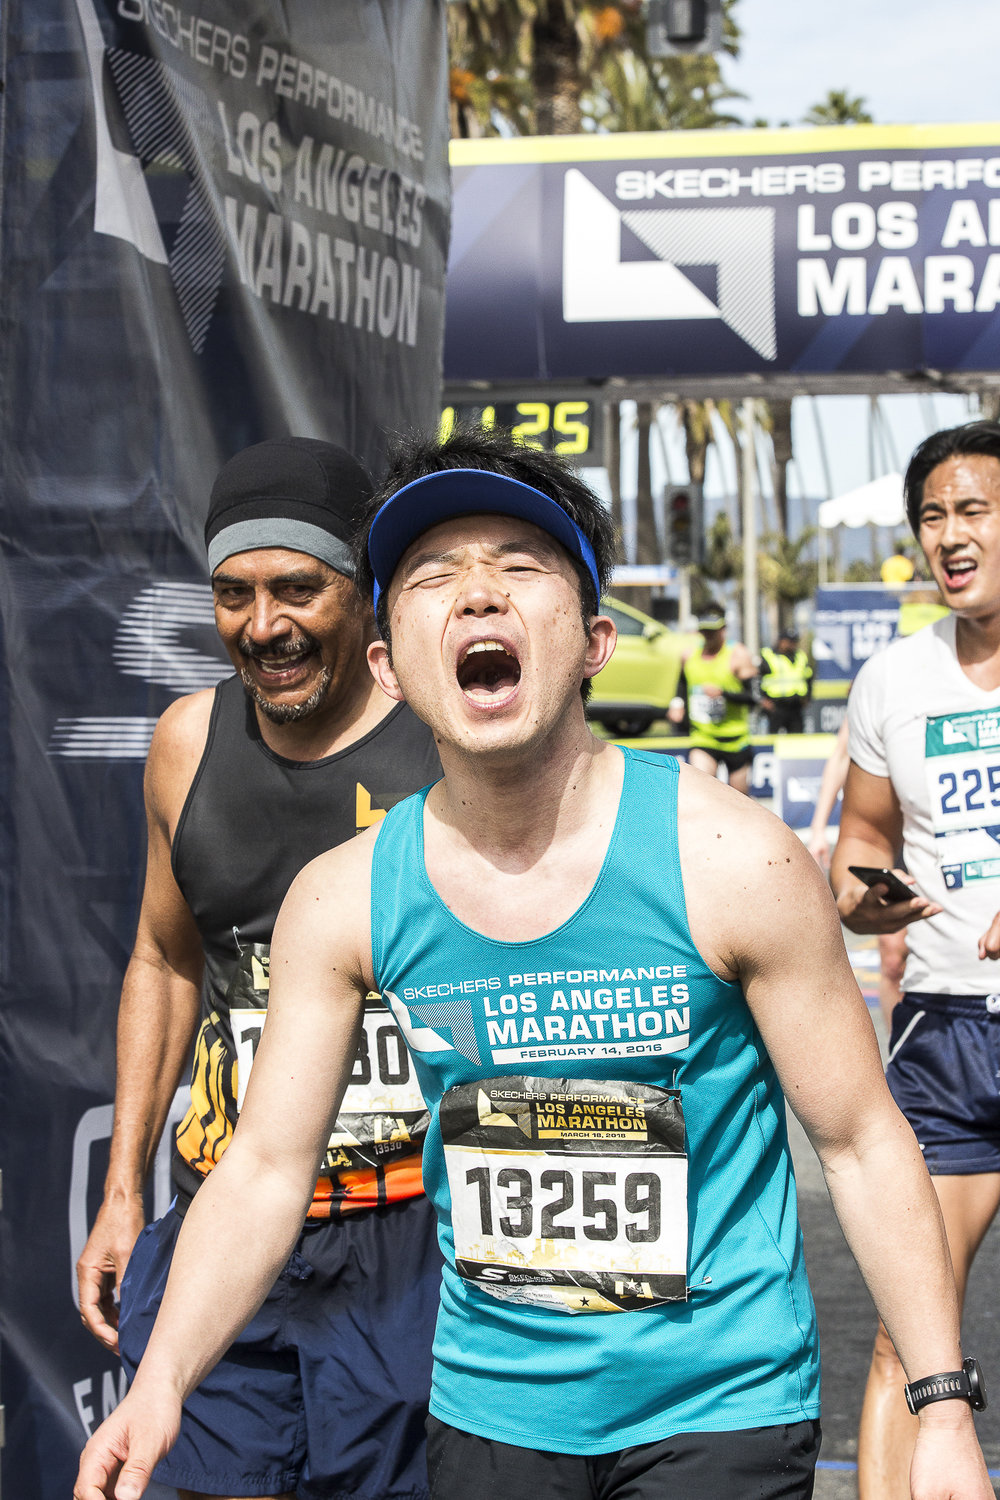 "Toshihiko Tateshita (bib #13259) (center) screams with joy after completing the 33rd annual Los Angeles Marathon event with a final time of 3:52:36 in Santa Monica, California on Sunday March 18, 2018. ""I did it…I finally did it! And no one can take that away from me!"" Tateshita loudly stated. (Matthew Martin/Corsair Photo)"